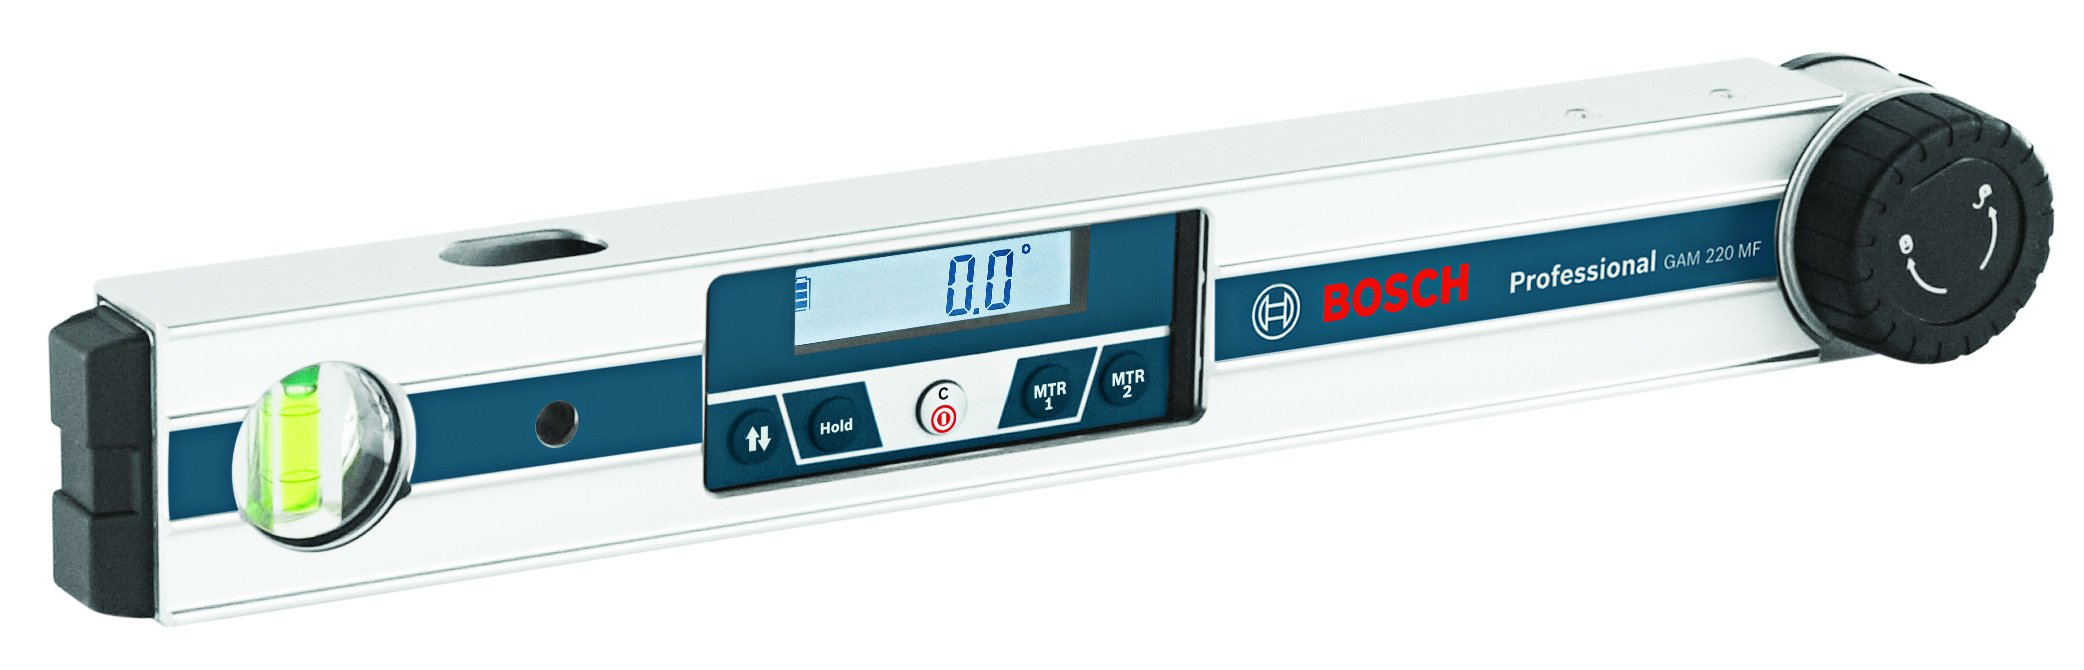 Bosch 4-in-1 Digital Angle Finder GAM 220 MF product image